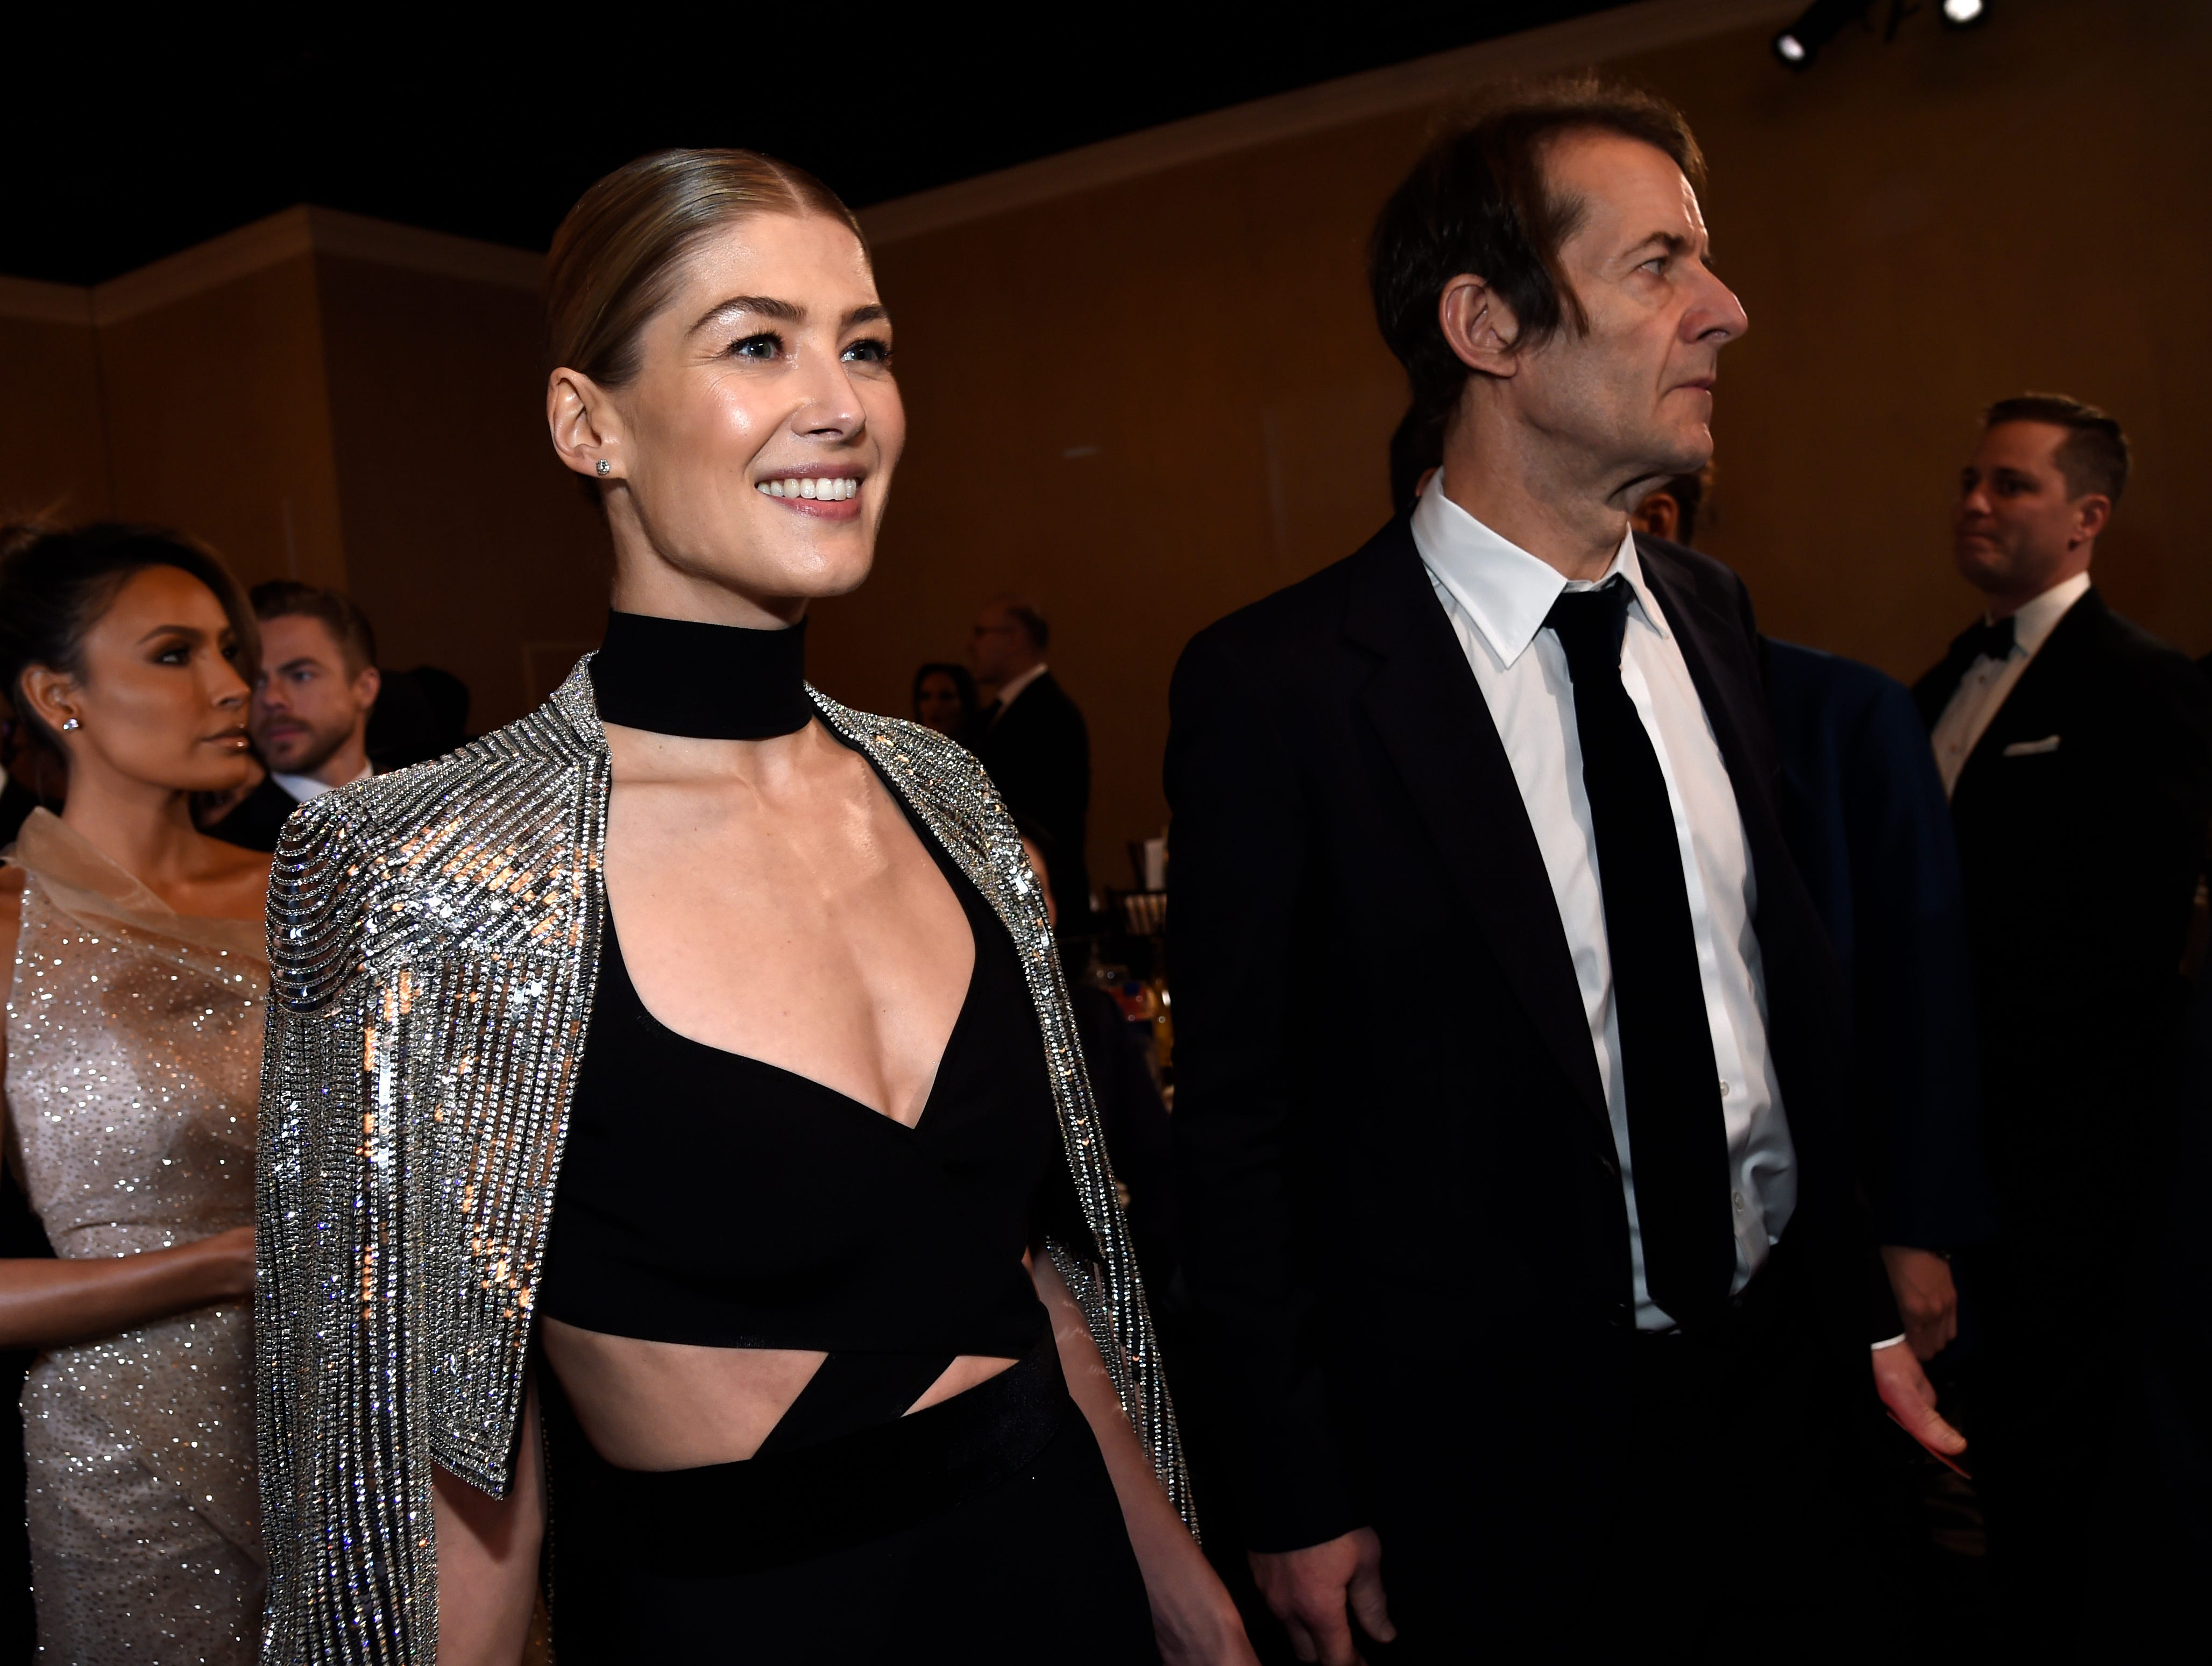 Rosamund Pike, left, and Robie Uniacke attend the 76th annual Golden Globe Awards at the Beverly Hilton Hotel.